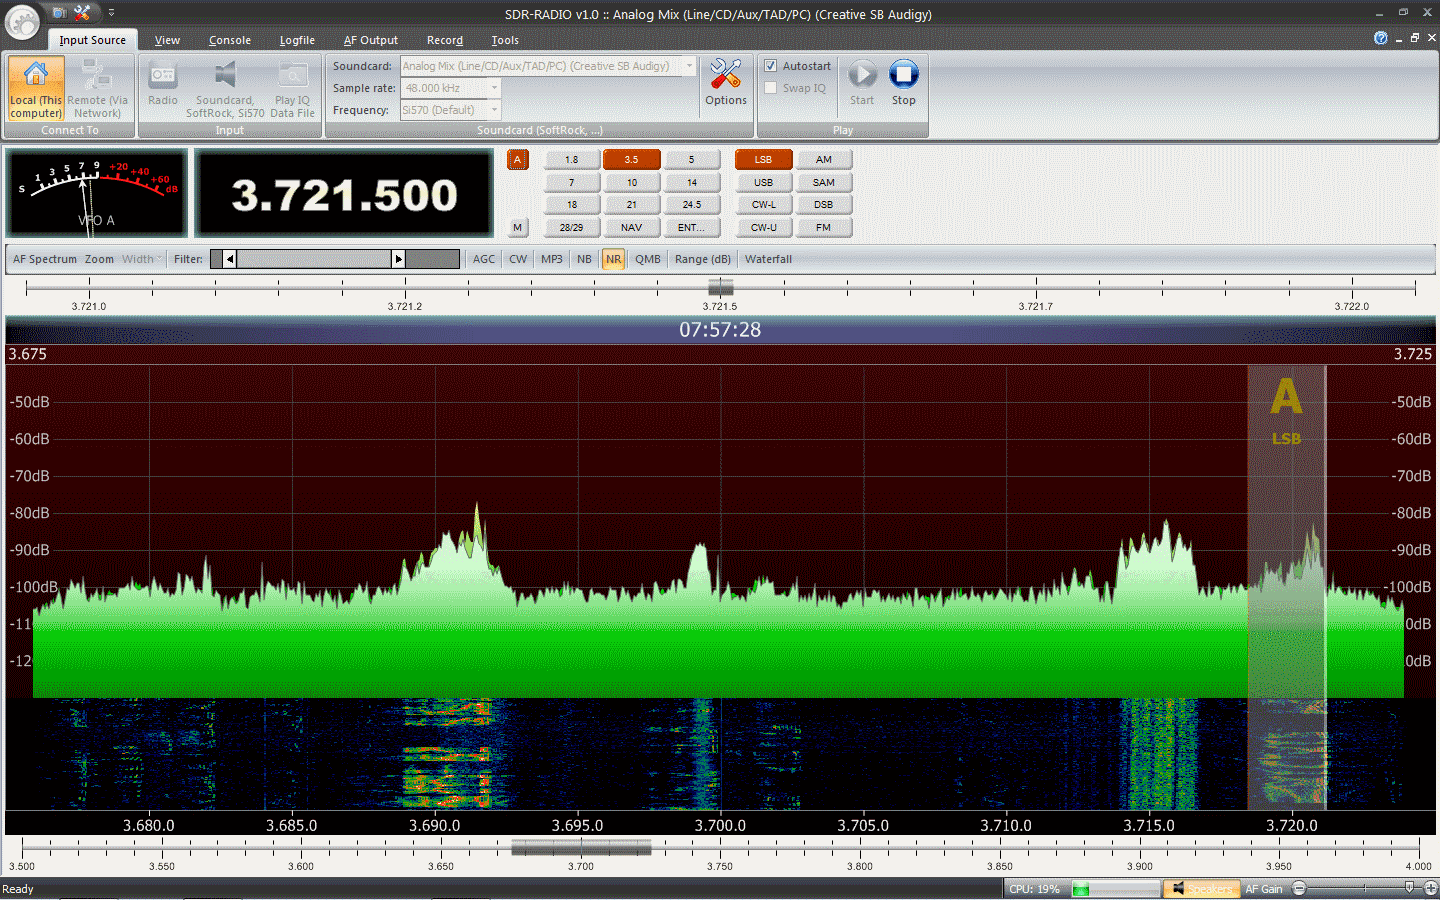 Software Defined Radio: SDR-RADIO